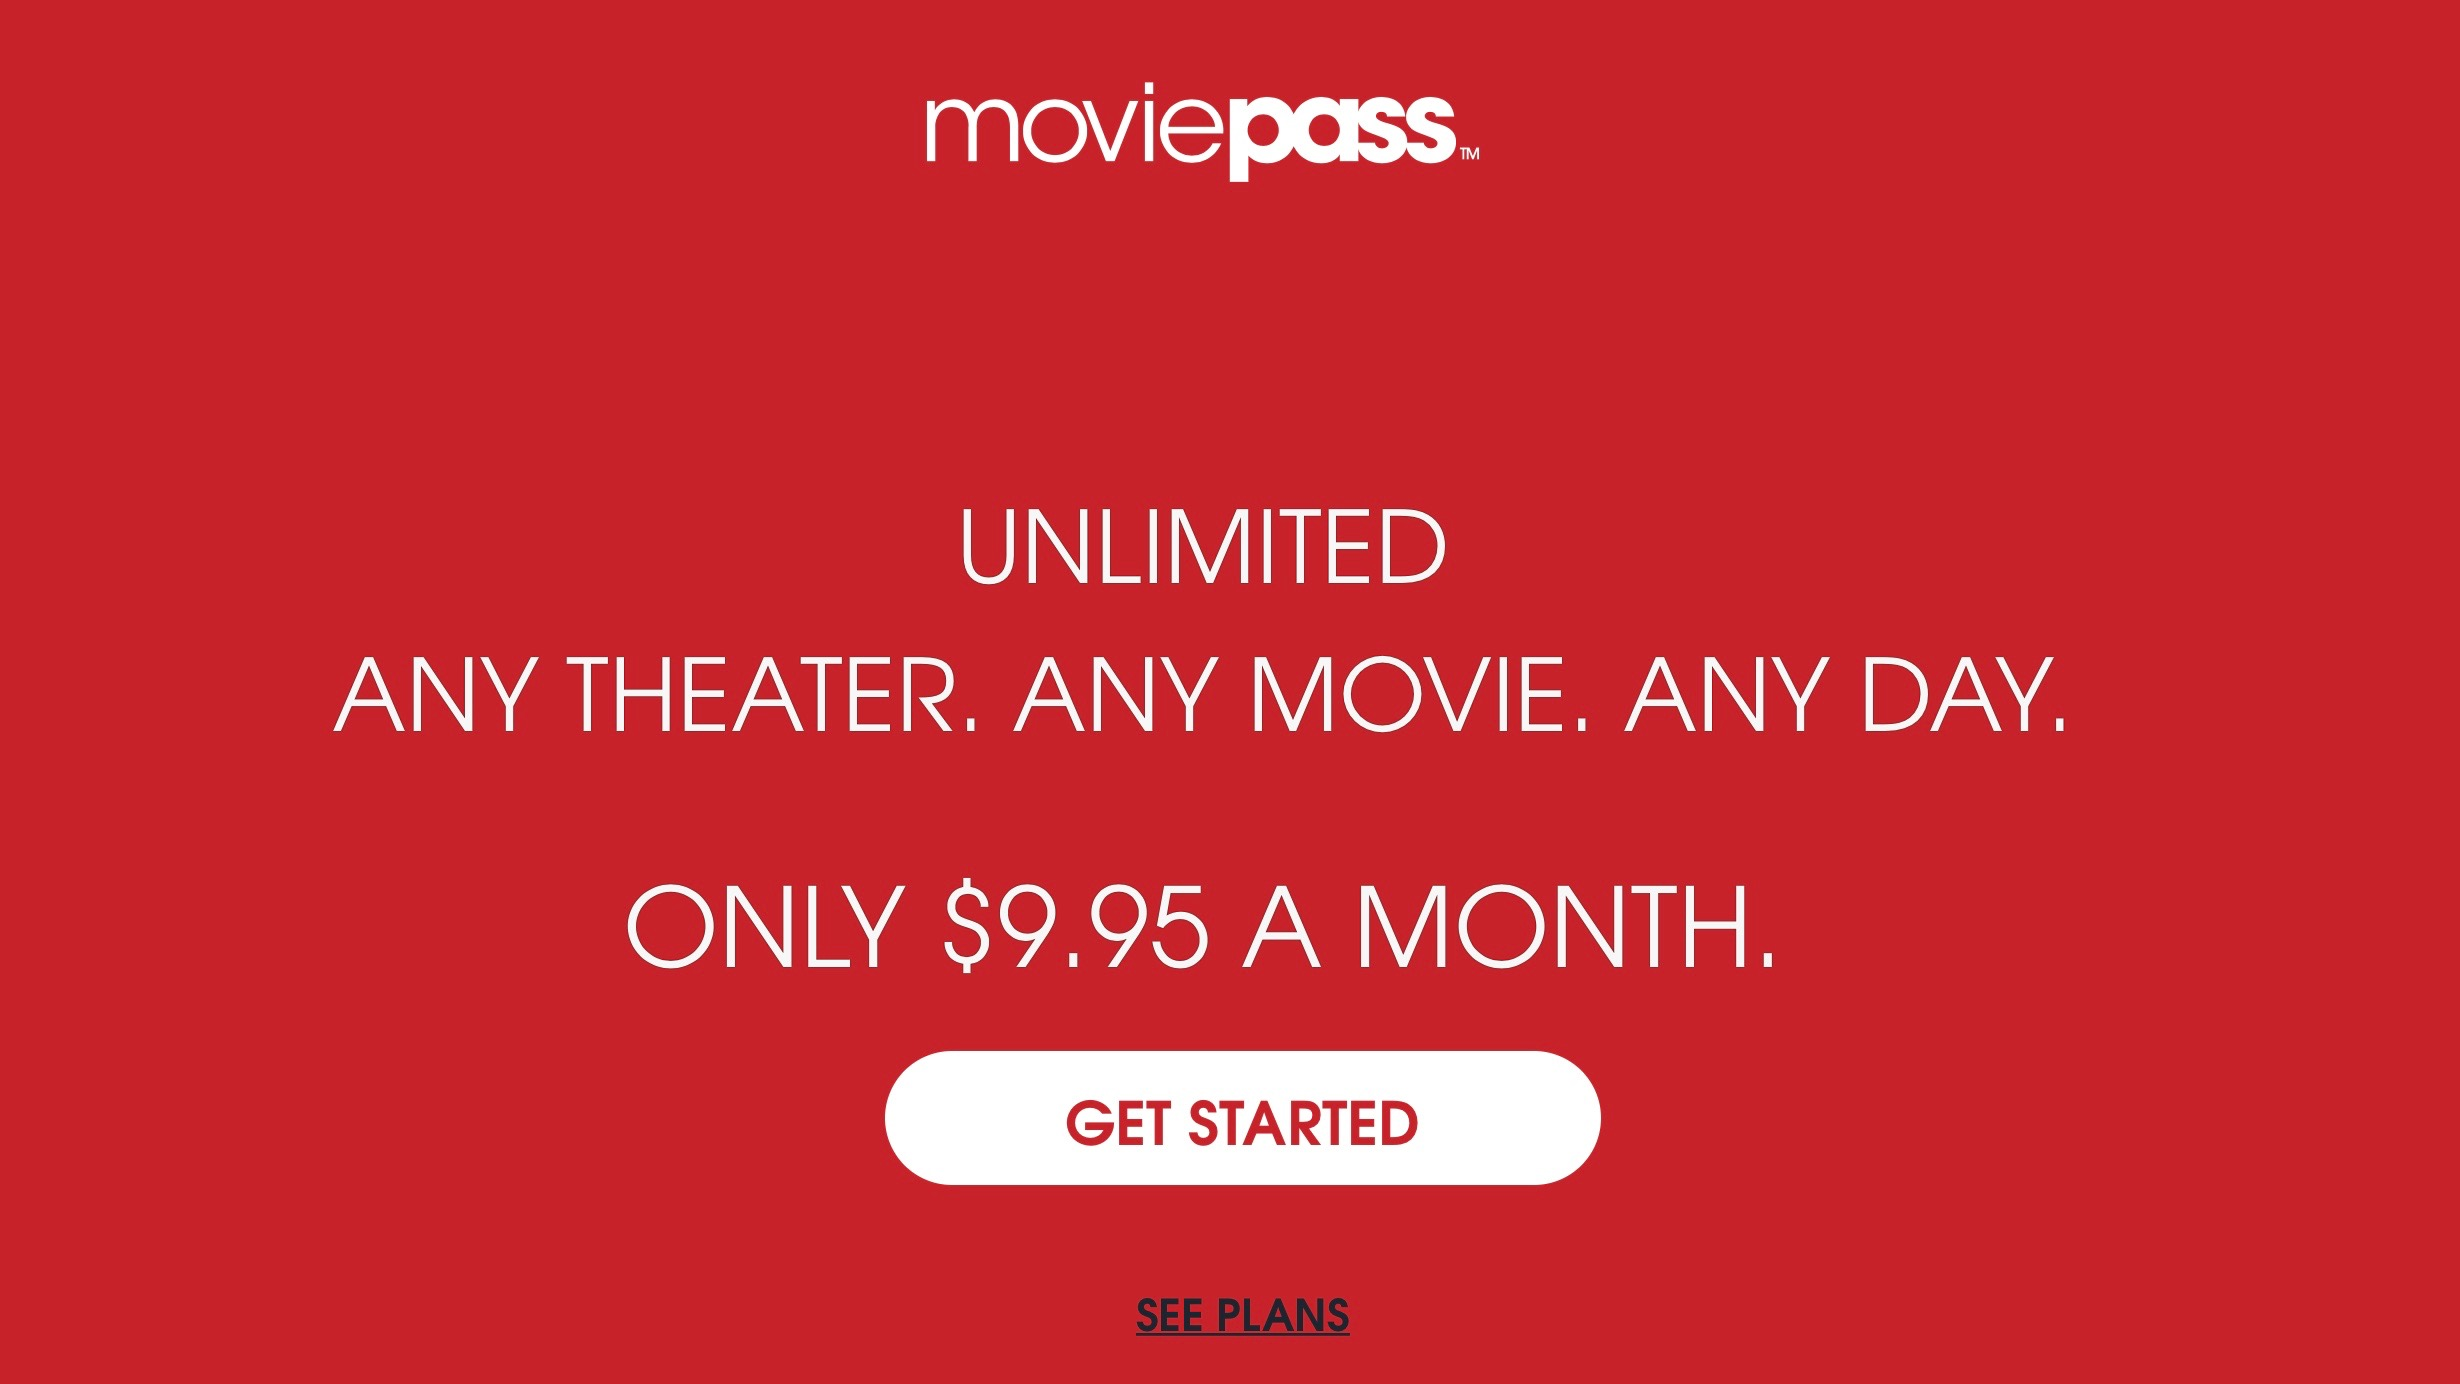 New SEC filing reveals MoviePass is running on fumes as it continues to burn through cash